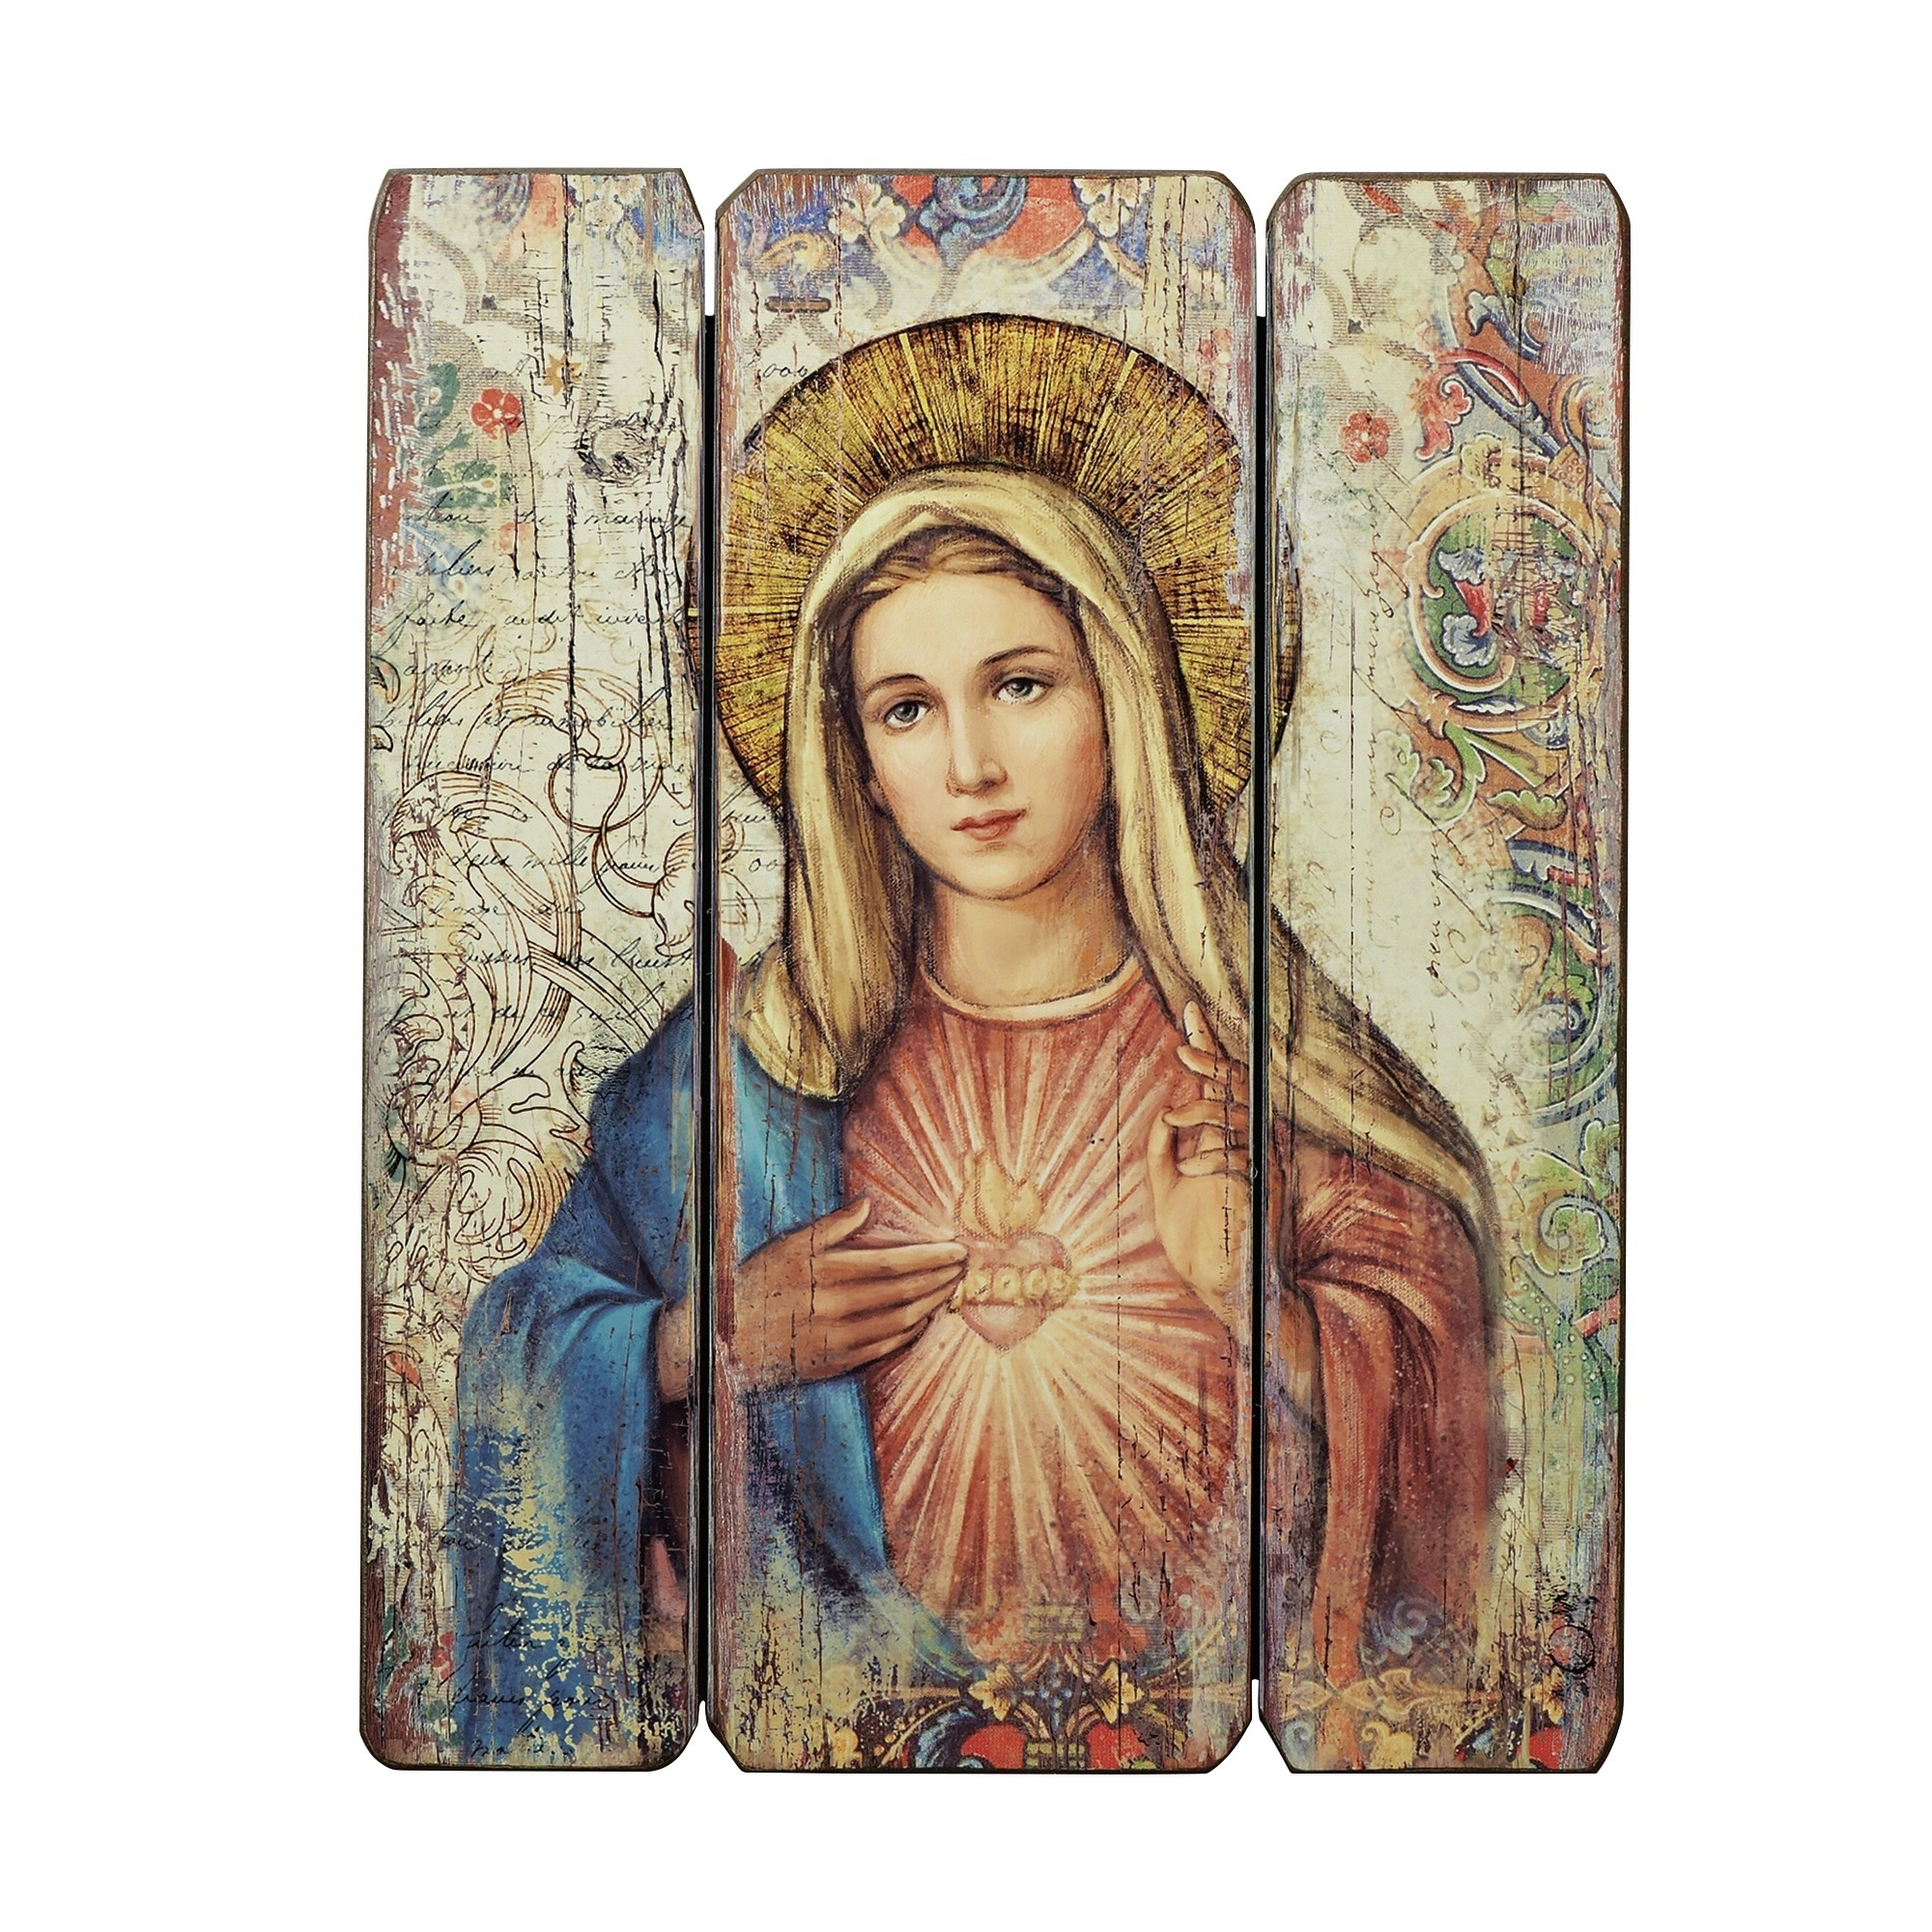 Virgin Mary Art: Our Lady Art Prints & More | The Catholic Company With Best And Newest Framed Asian Art Prints (Gallery 14 of 15)